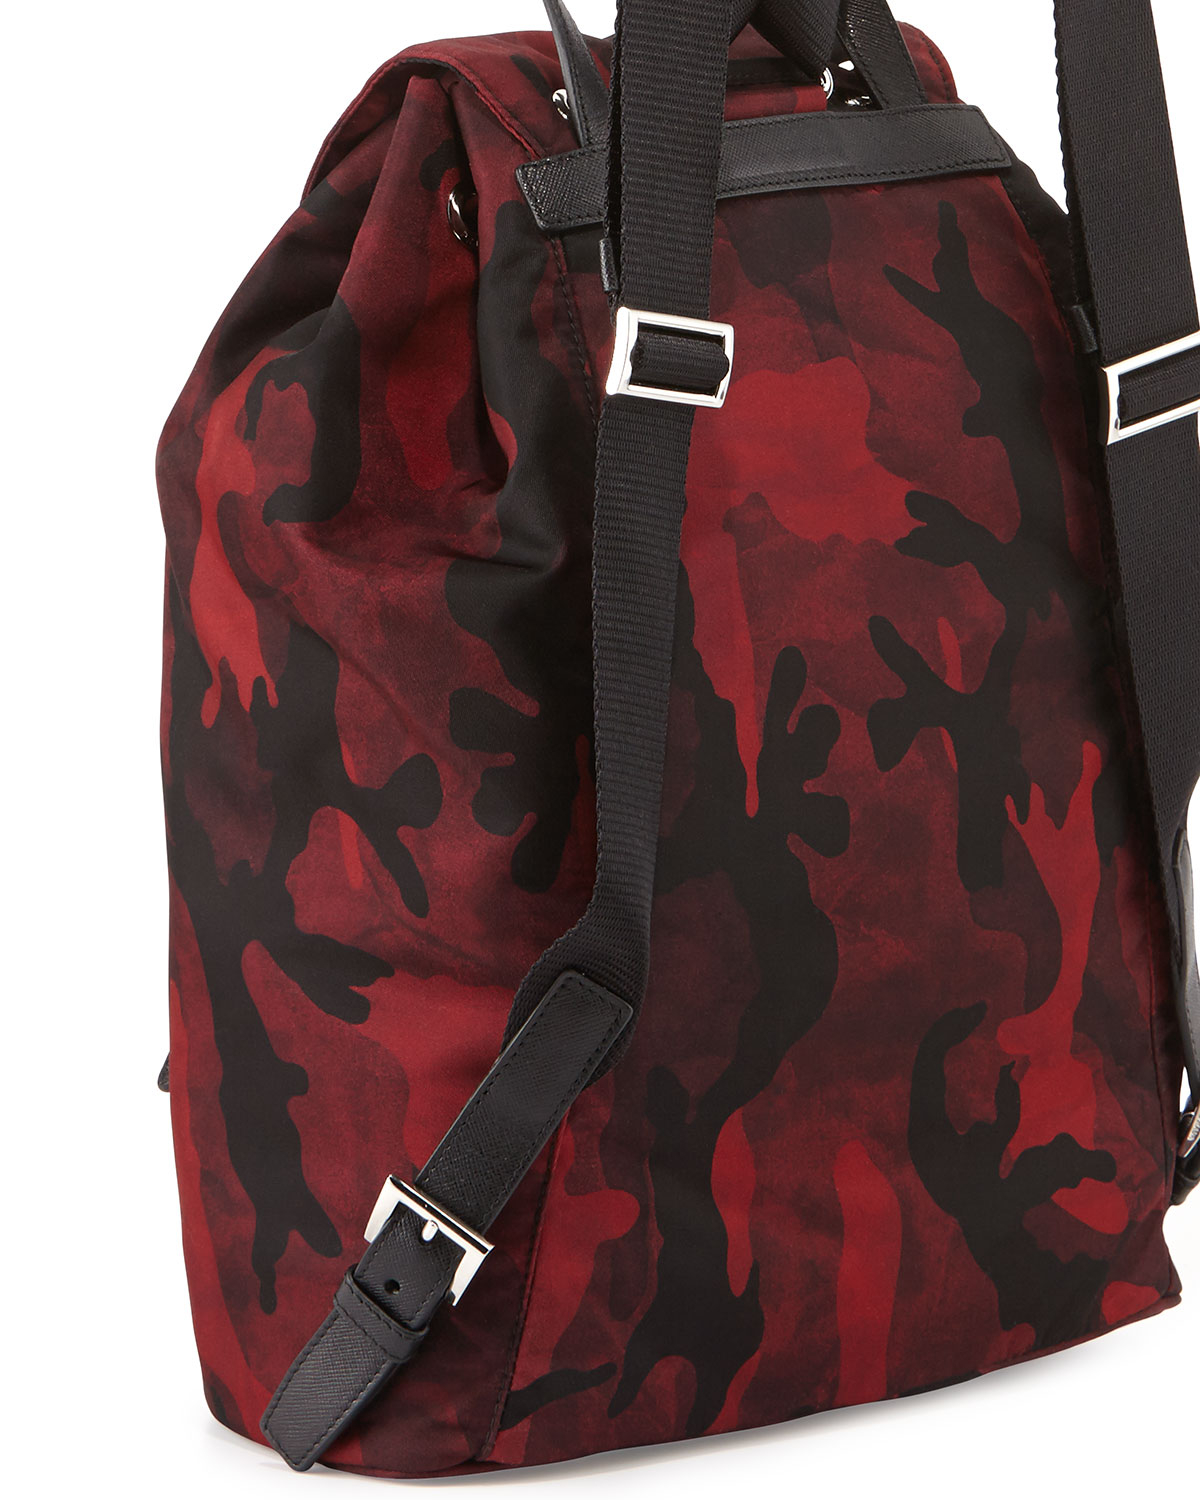 26521e73f80c39 Prada Tessuto Camouflage Backpack in Red for Men - Lyst